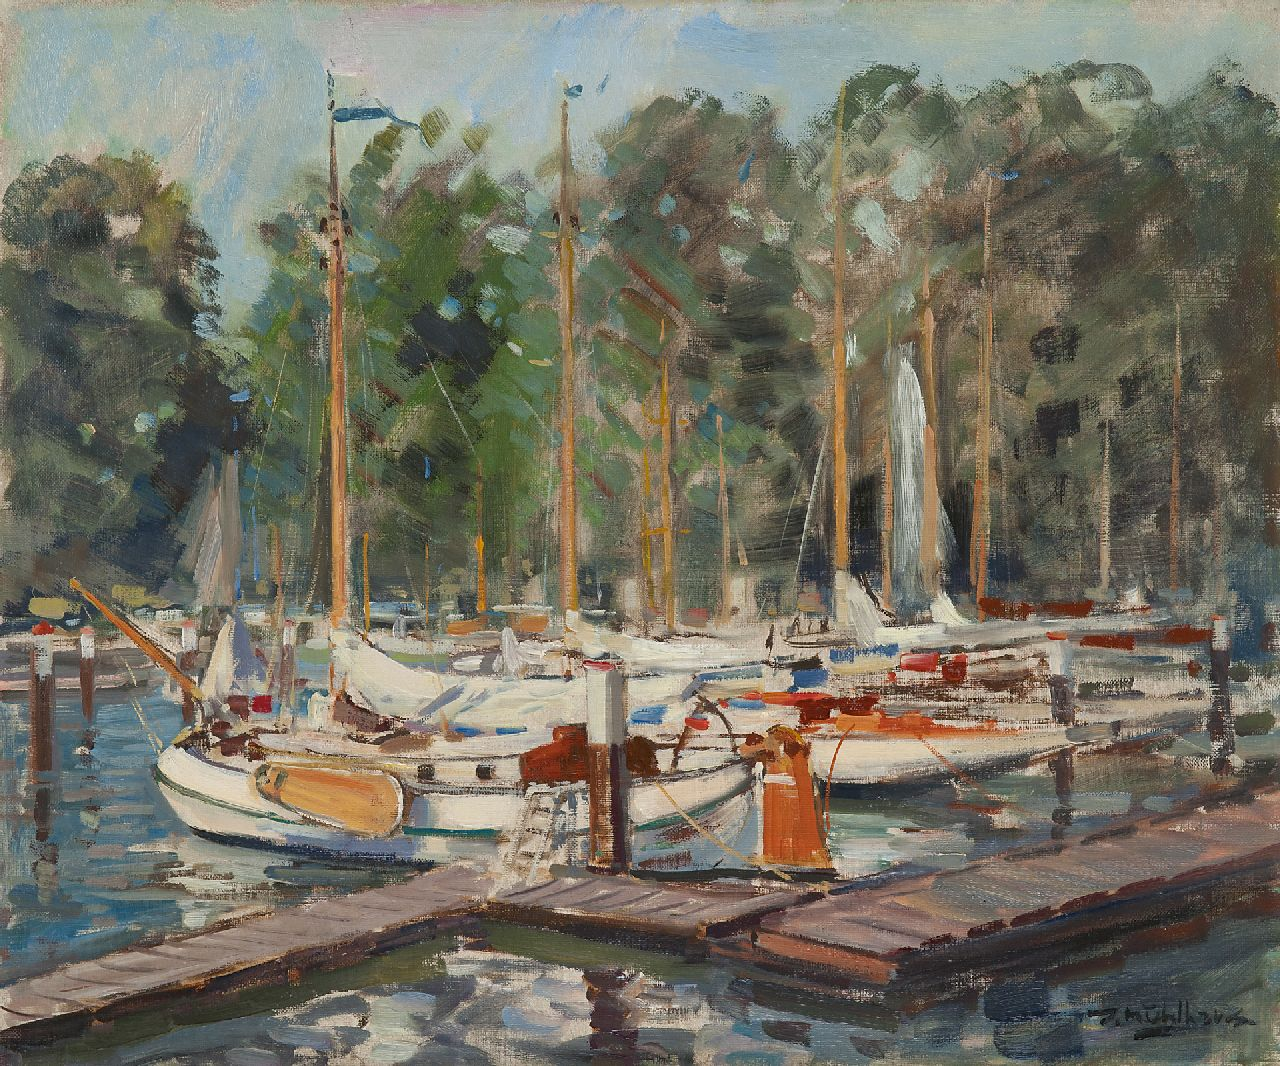 Daan Mühlhaus | Moored yachts in the harbour of the KDRZV Dordrecht, oil on canvas, 50.0 x 60.2 cm, signed l.r.